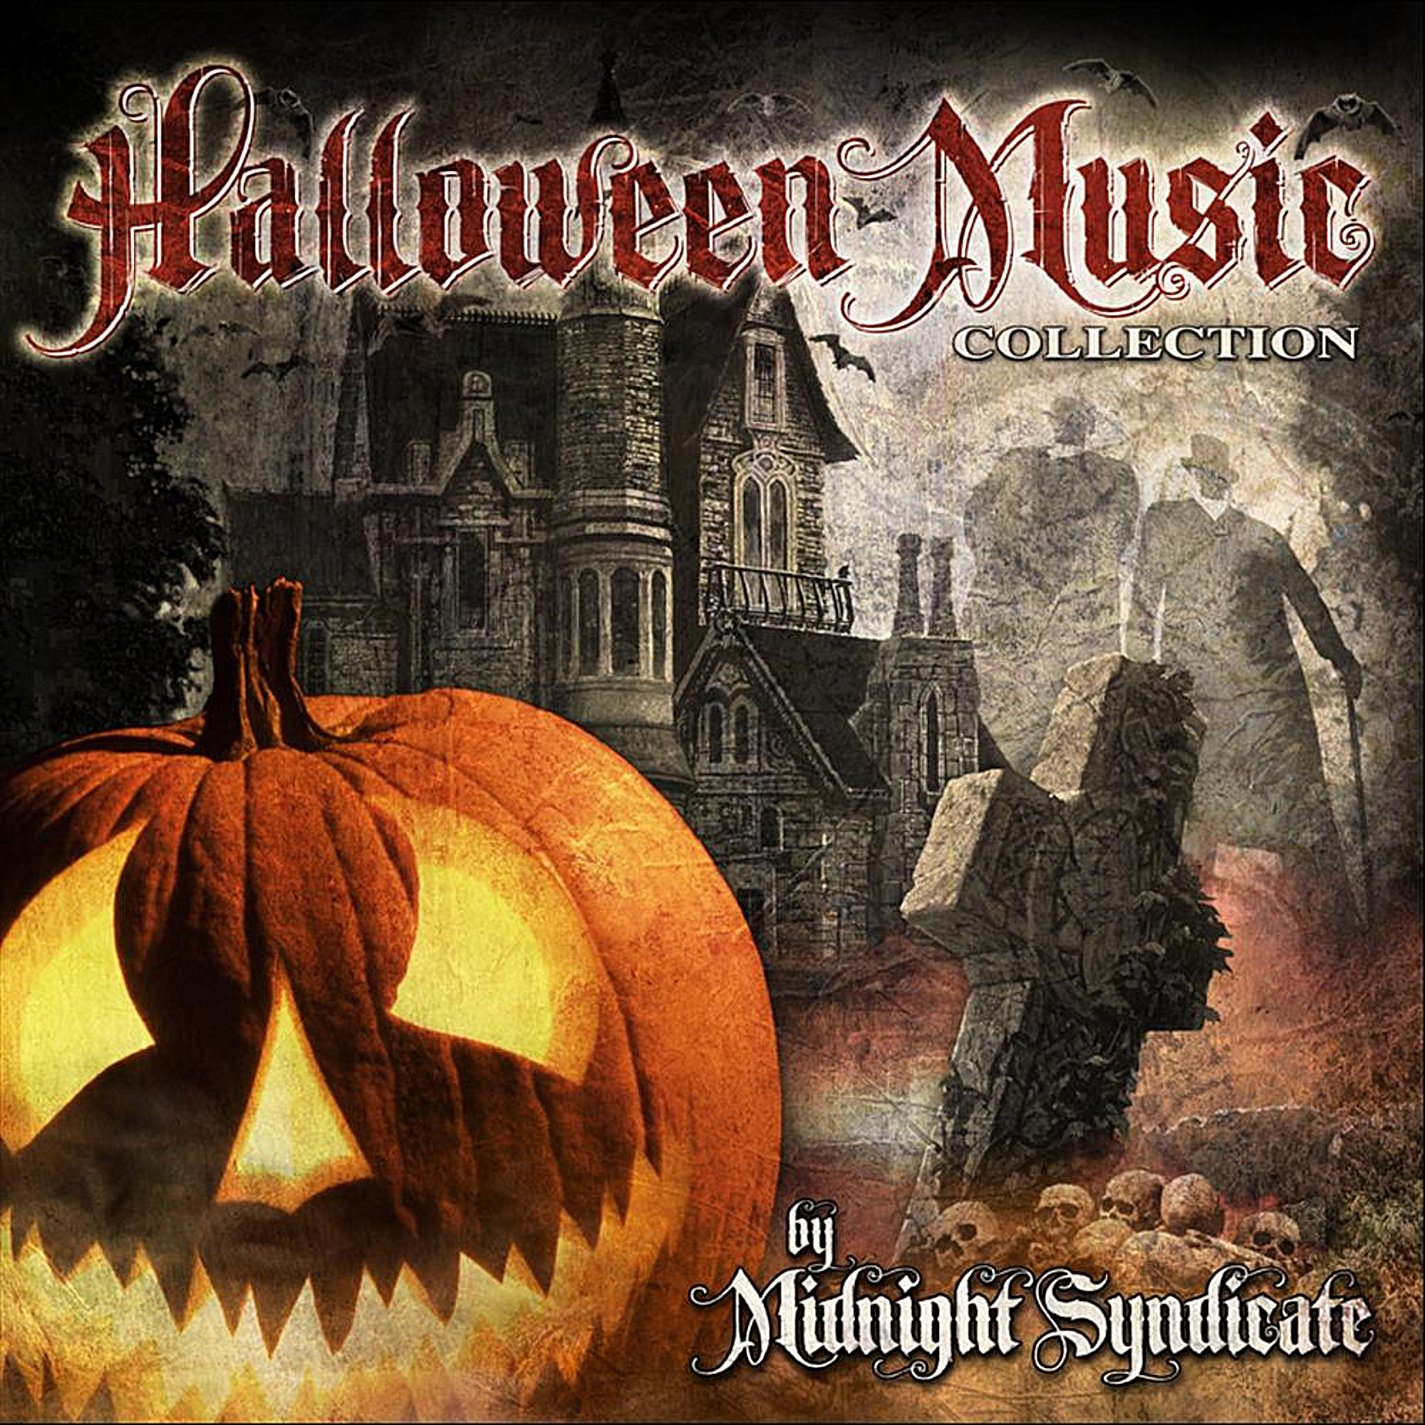 midnight syndicate halloween music collection amazoncom music - Bob And Tom Halloween Songs